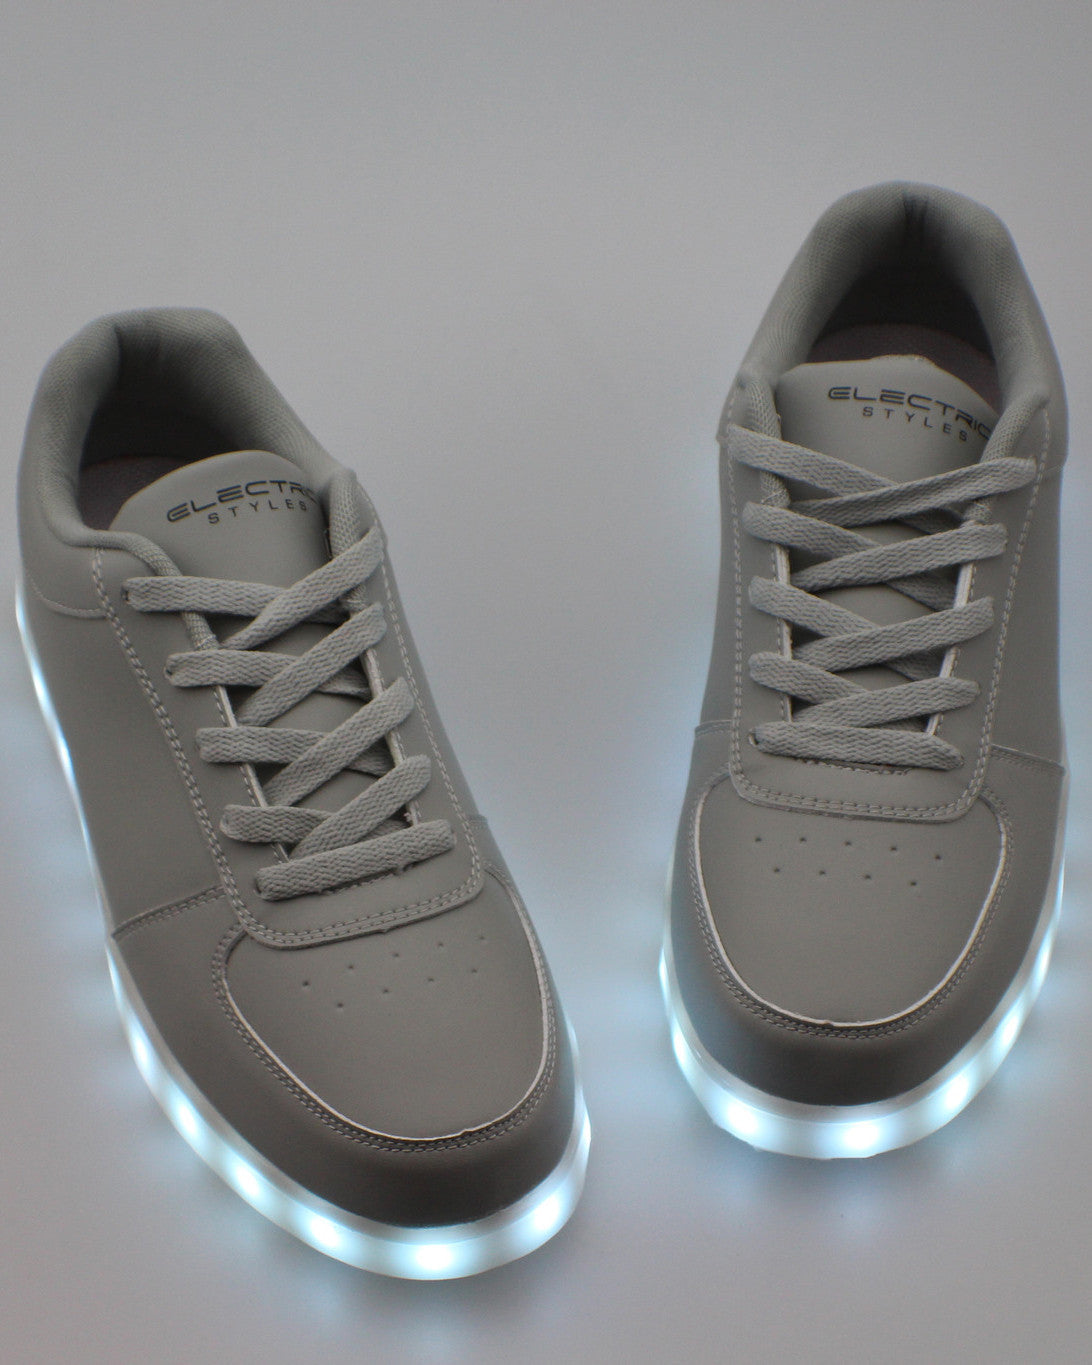 Light Up Shoes - Stone Grey - Electric Styles | World's Number 1 Light Up Shoe Store - {product_type}} -  - 9